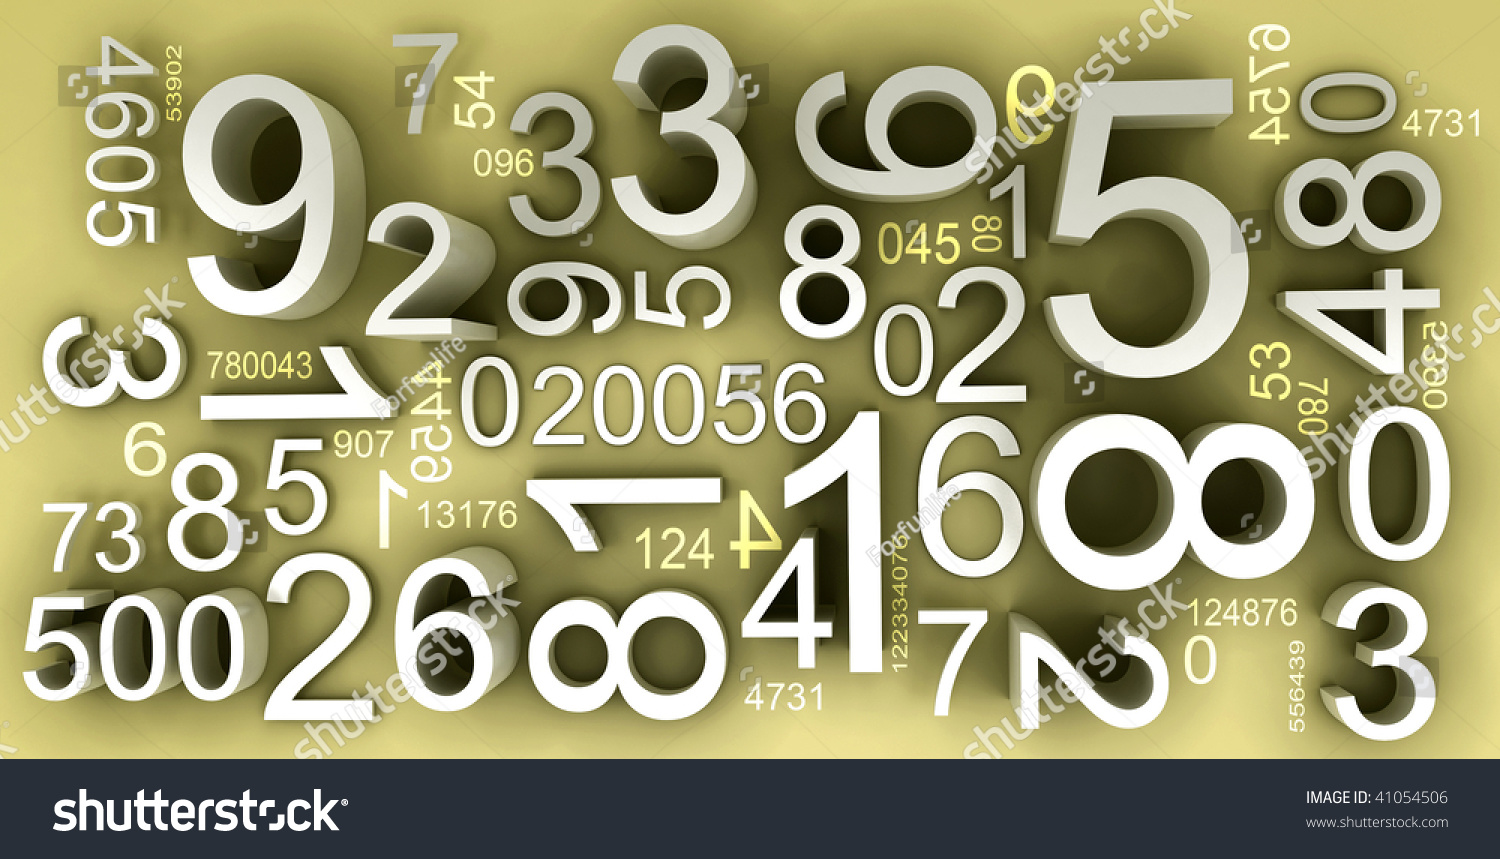 numbers one background mix many codes stock illustration